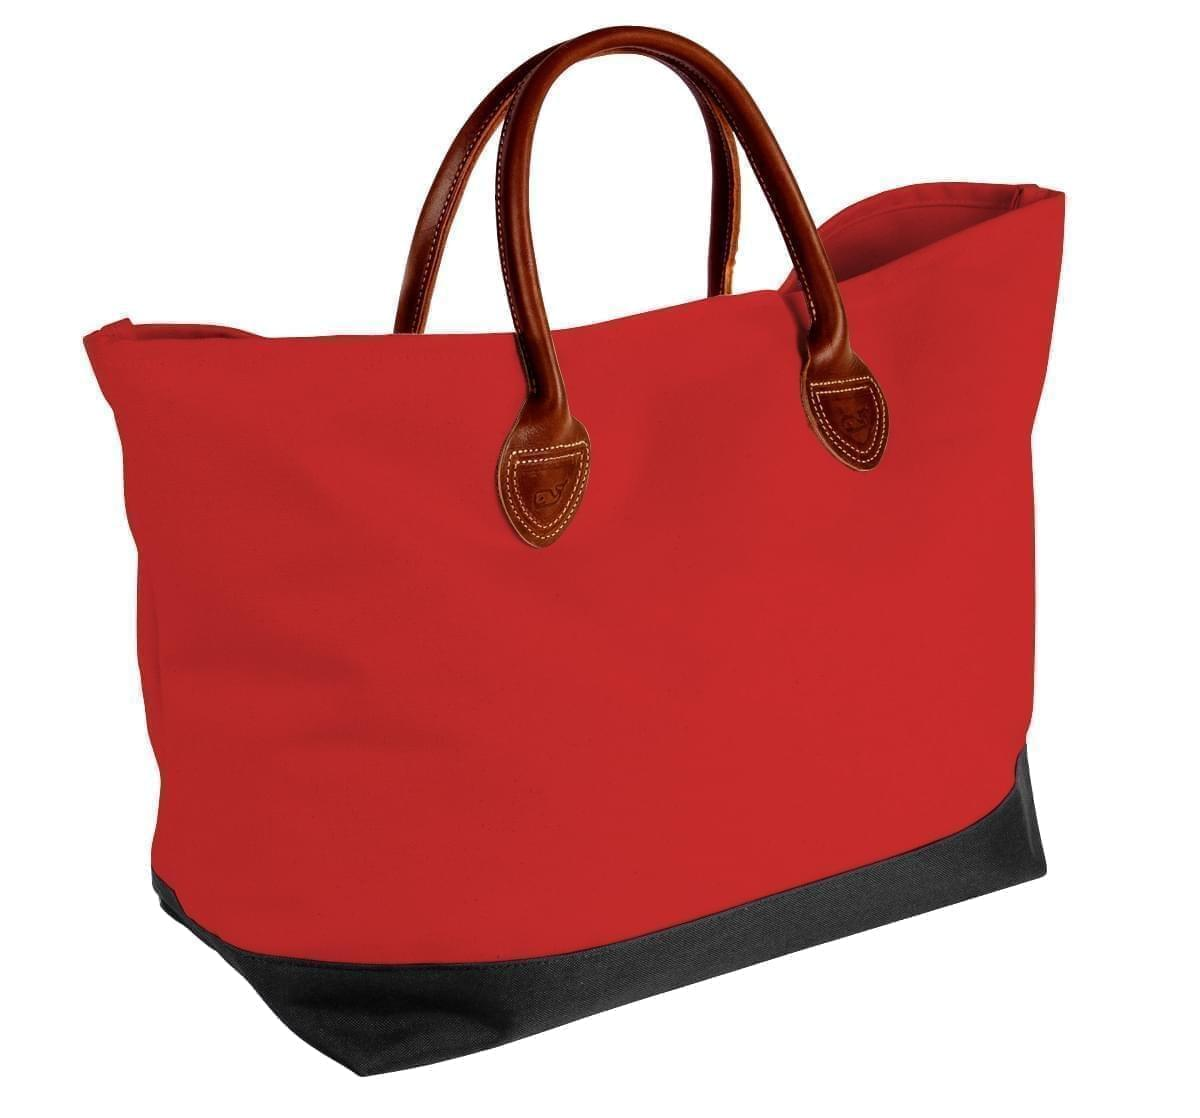 USA Made Canvas Leather Handle Totes, 10899-12C